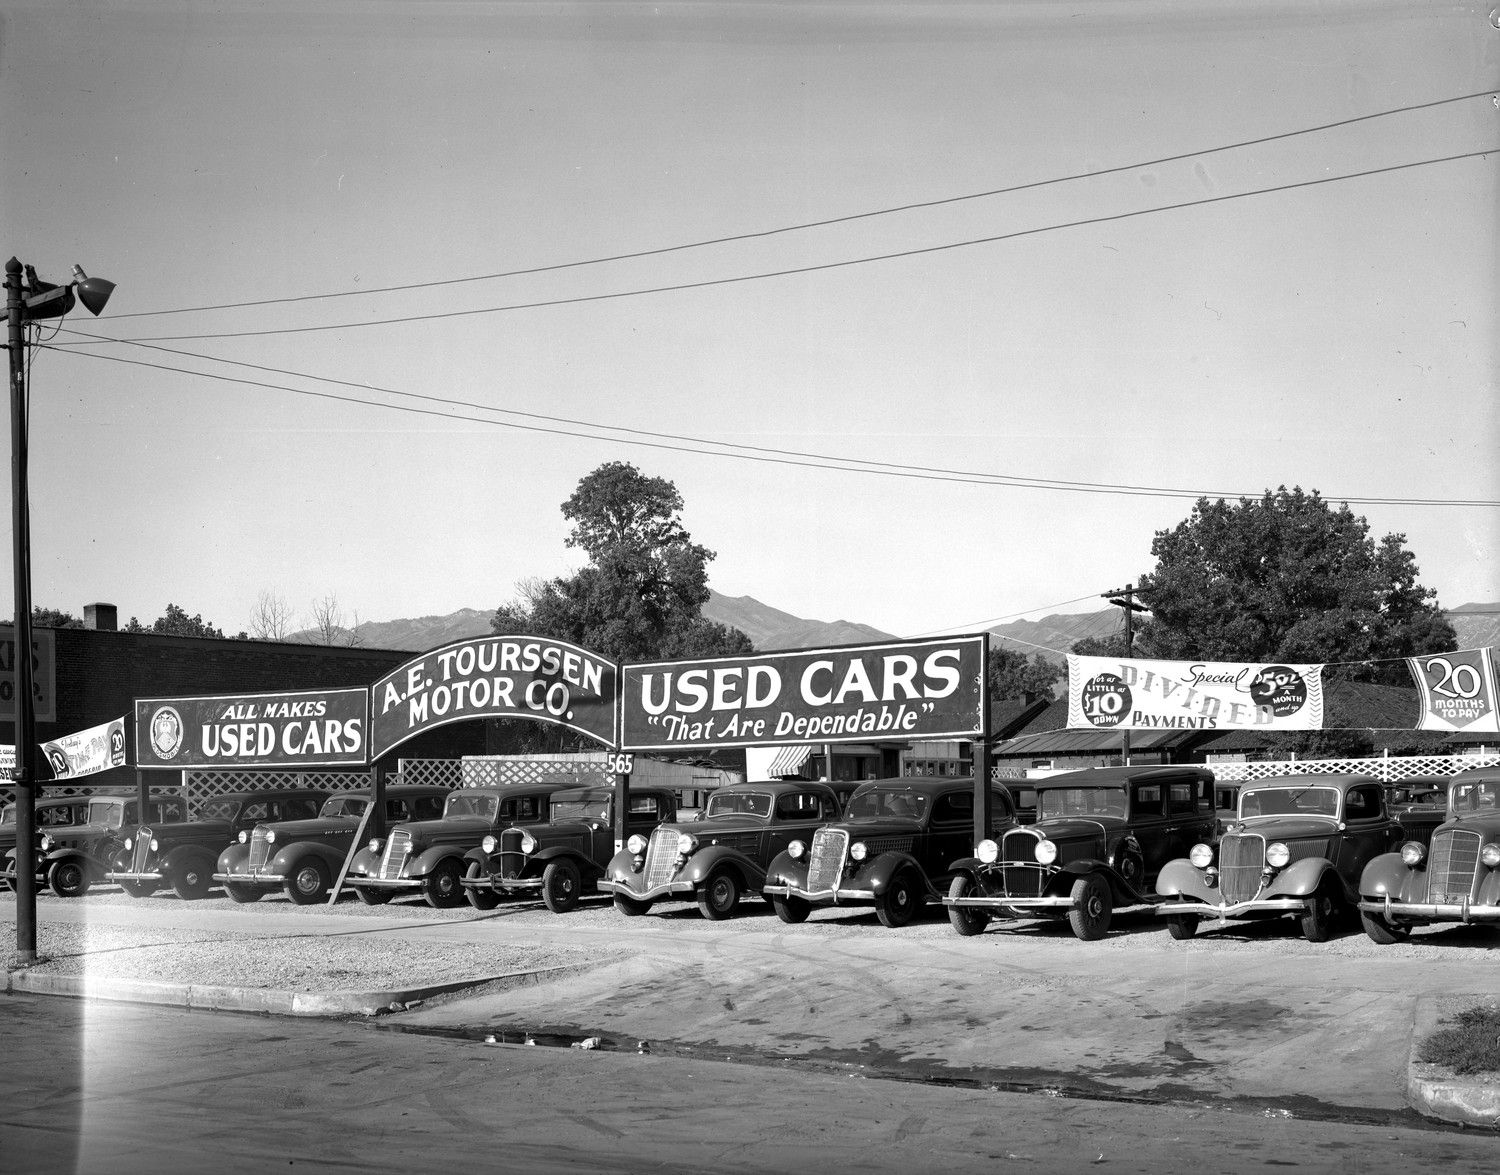 Old Car Dealers >> Lost Dealerships Project A E Tourssen Used Cars Cars Vintage